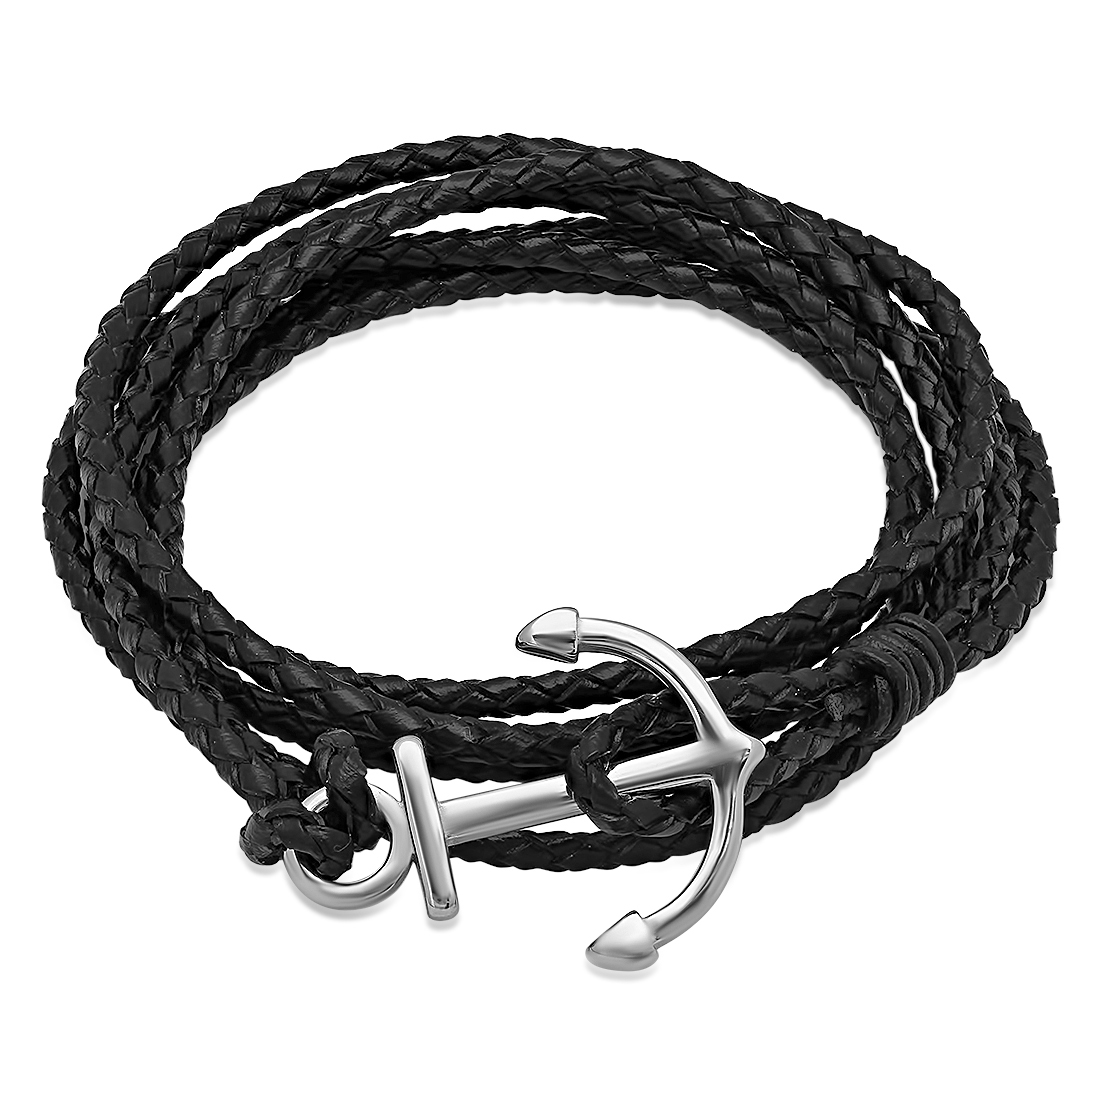 Black Leather Wrap Bracelet with Stainless Steel Anchor Clasp